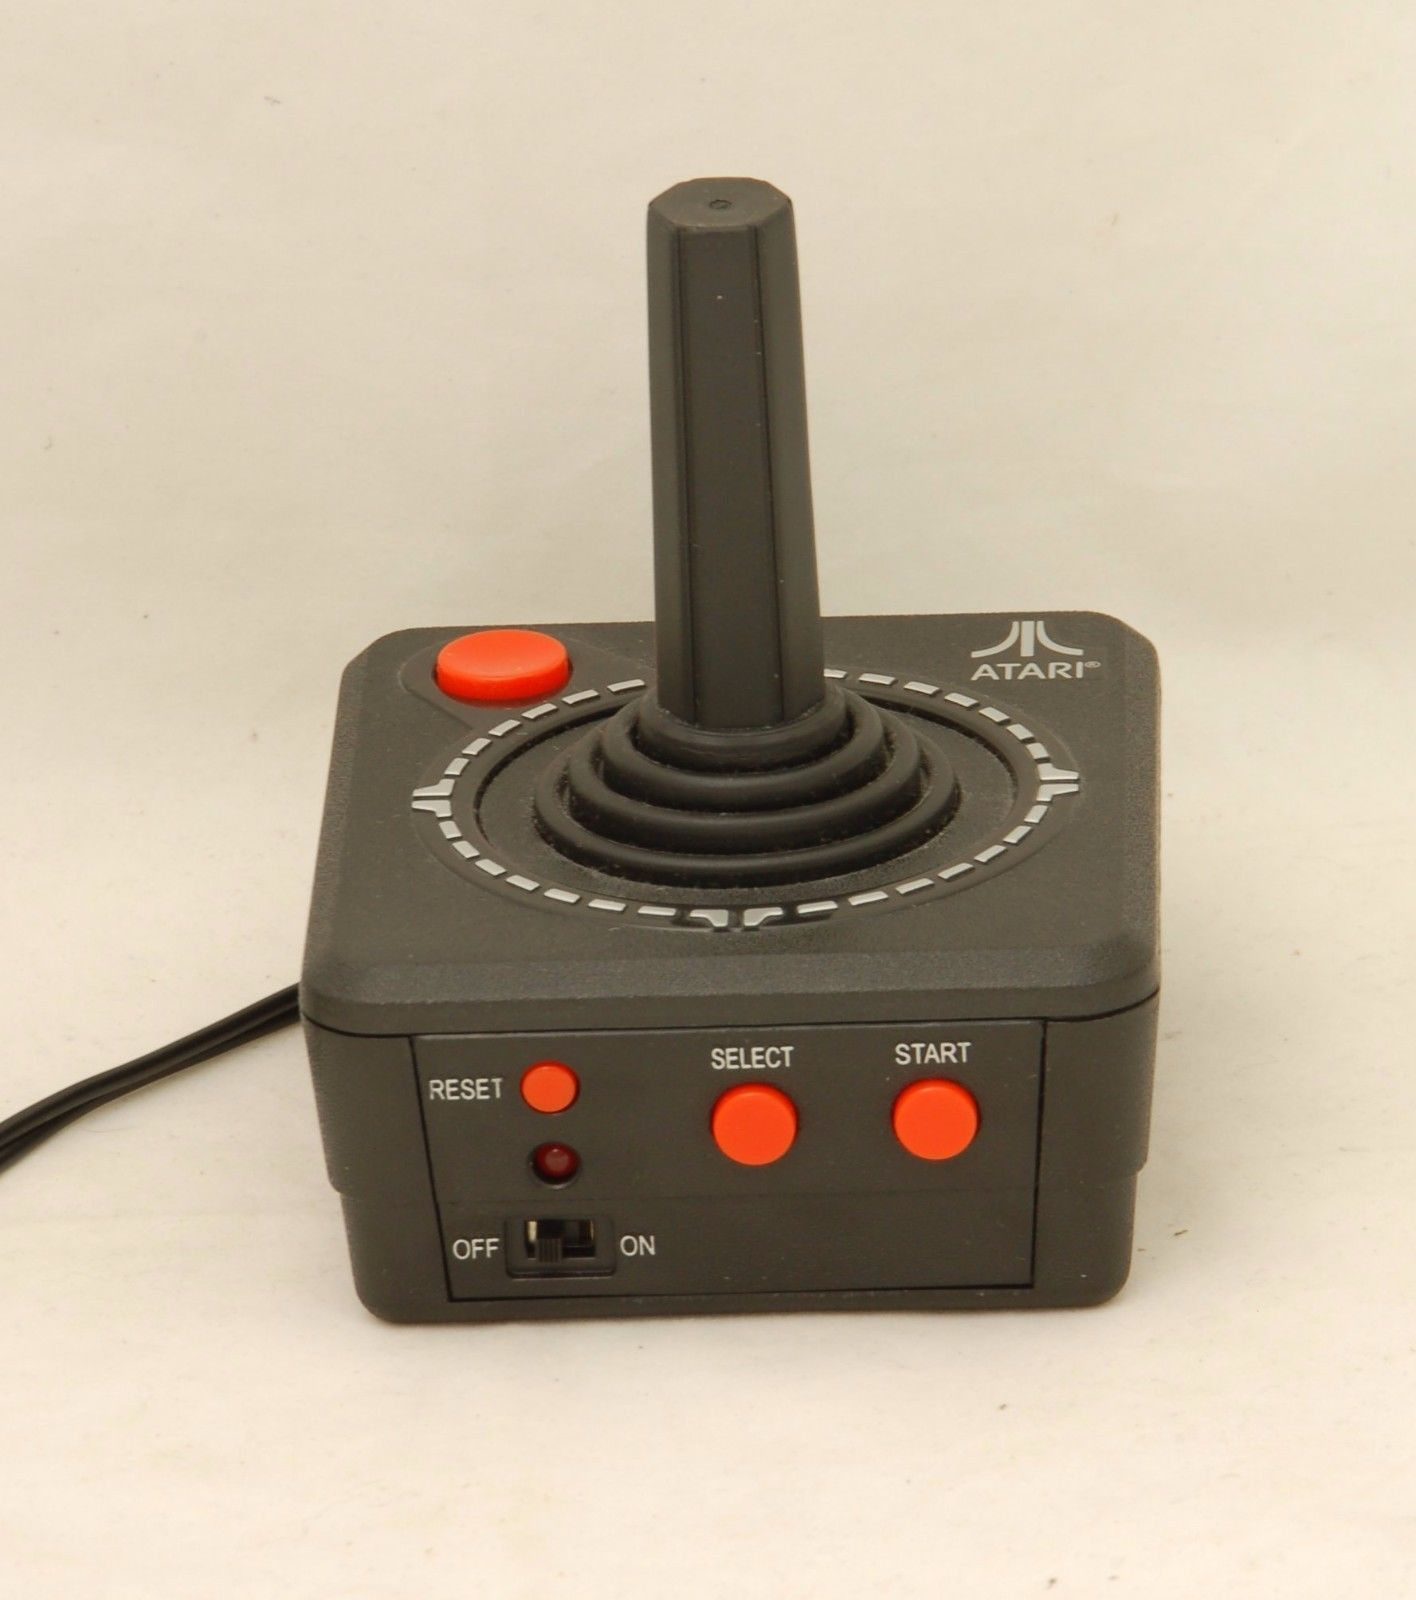 Atari tv plug play joystick home video system 10 in 1 game console controller for sale item - Atari game console for sale ...